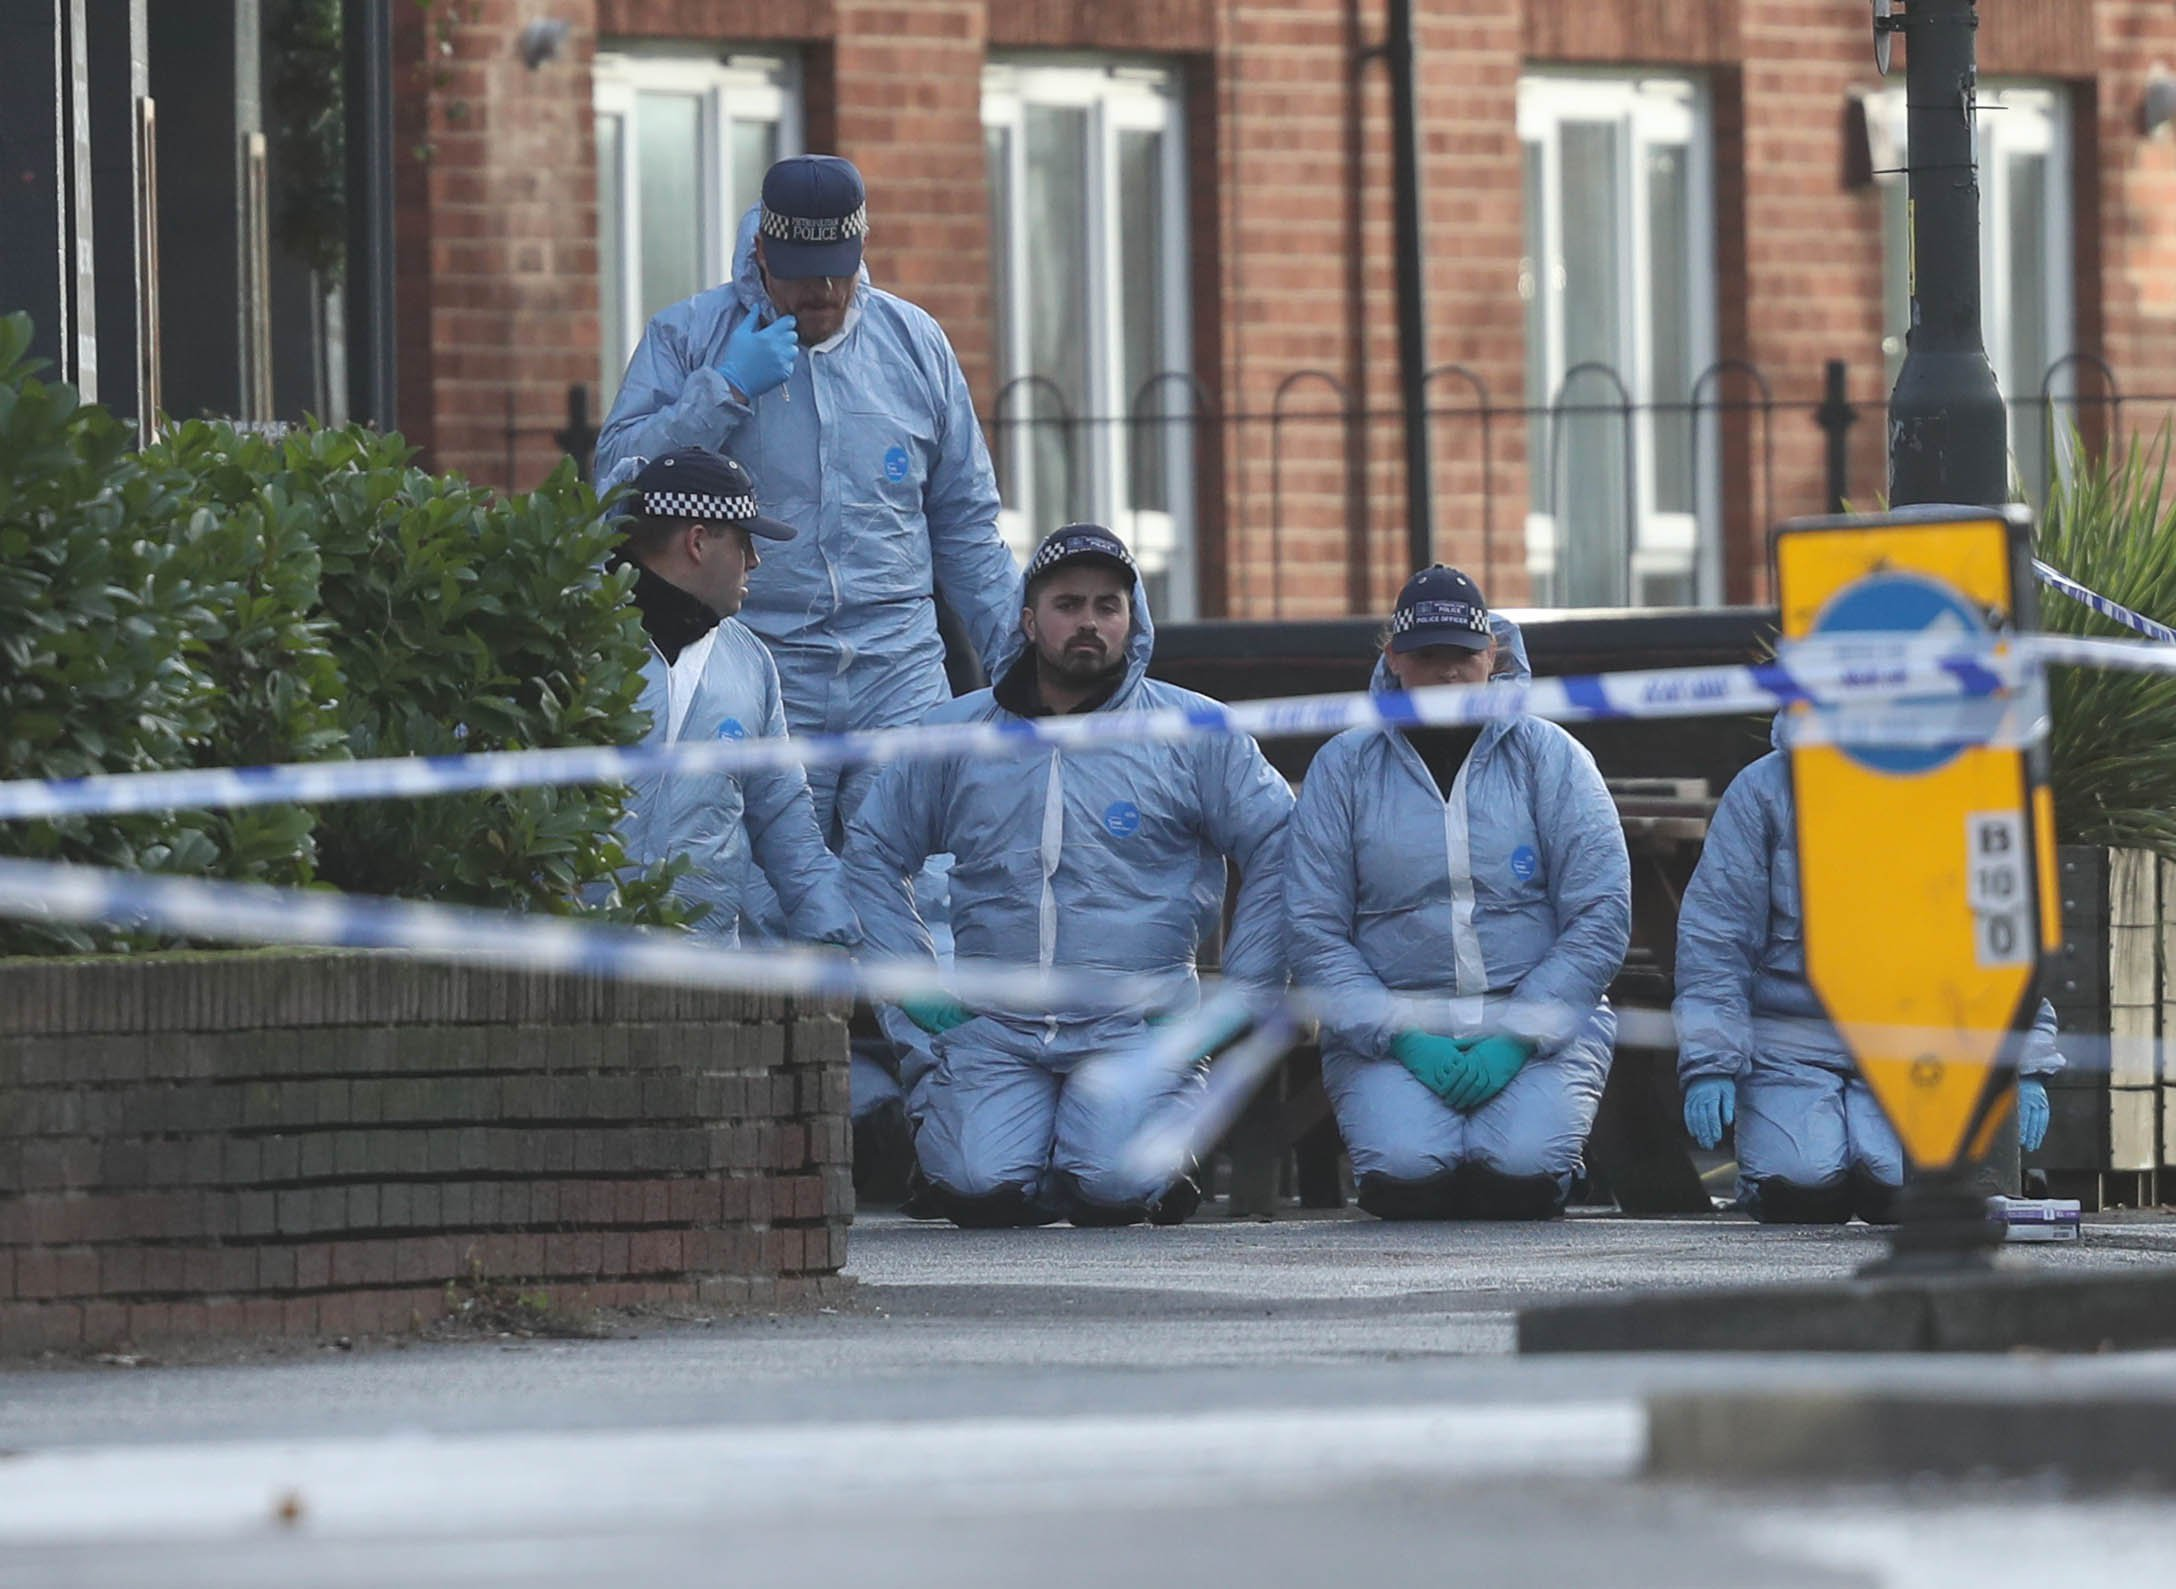 Police at the scene after a man was shot during a police operation in Wimbledon, south-west London. PRESS ASSOCIATION Photo. Picture date: Monday December 3, 2018. The Metropolitan Police said he was shot at around 8.10am on Monday in Lacock Close during an operation involving officers from the anti-robbery Flying Squad supported by armed colleagues. See PA story POLICE Wimbledon. Photo credit should read: Steve Parsons/PA Wire